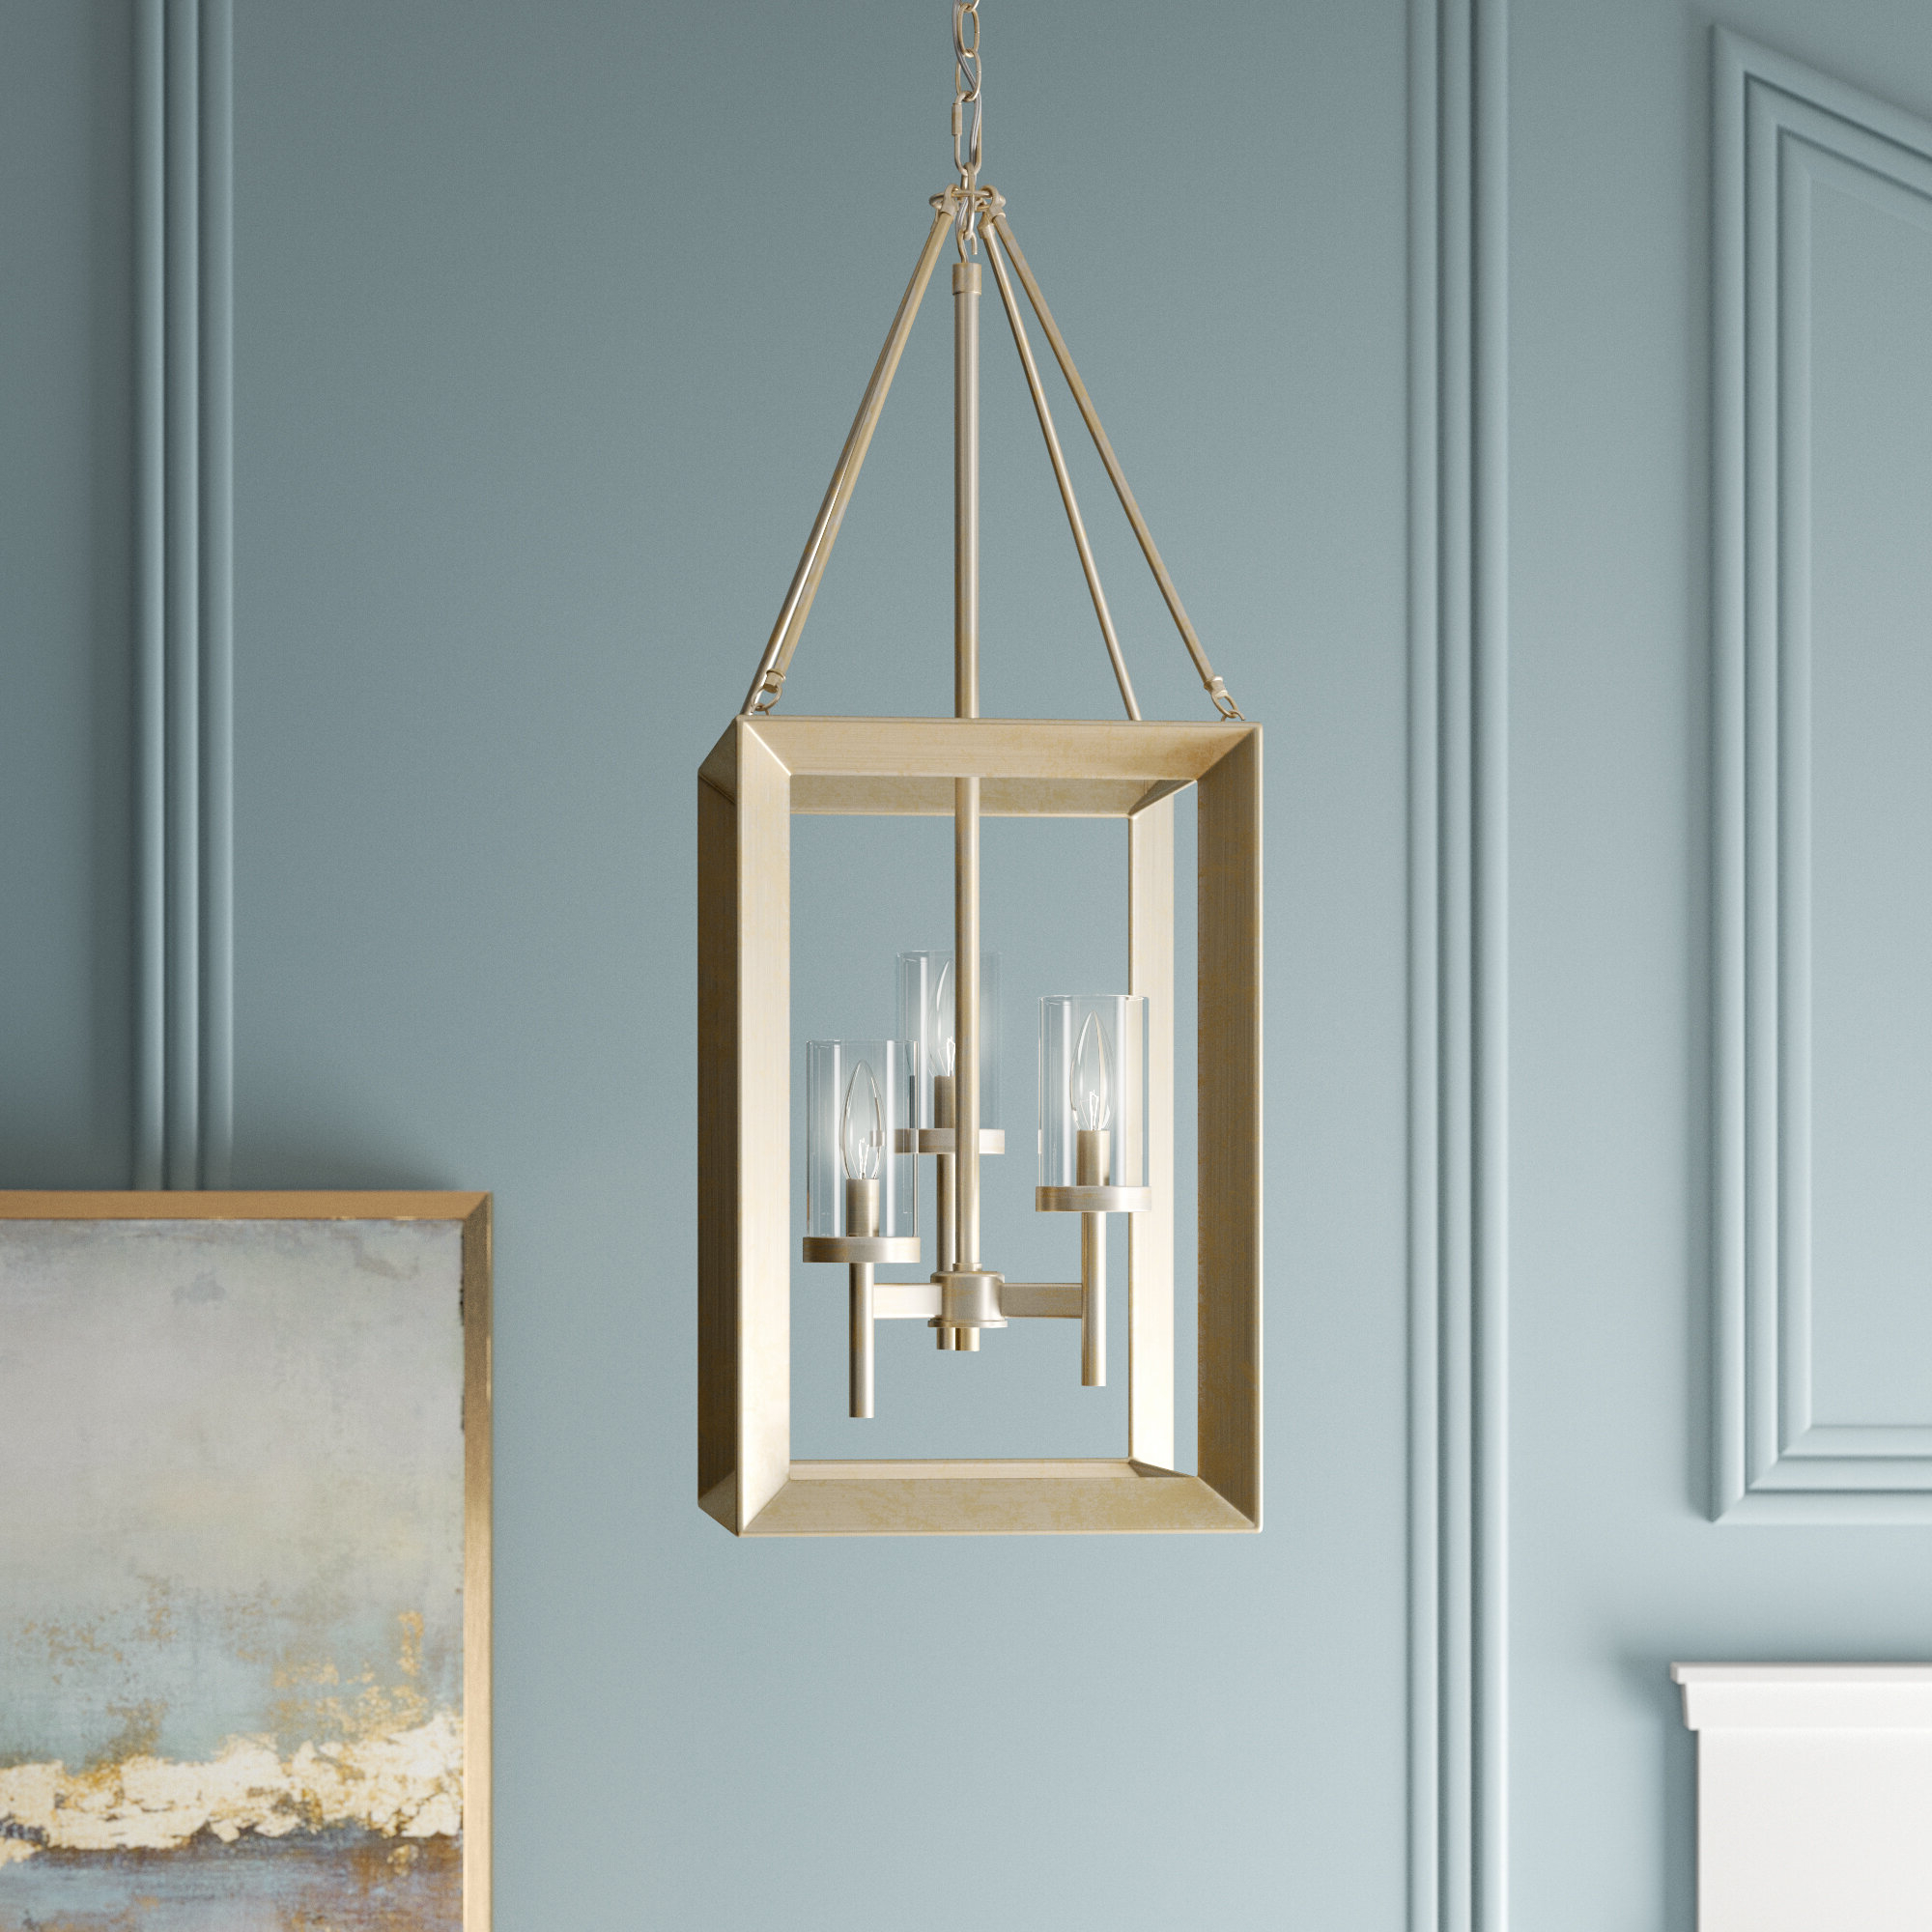 Best And Newest Thorne 6 Light Lantern Square / Rectangle Pendants Regarding Thorne 3 Light Lantern Square / Rectangle Pendant & Reviews (View 4 of 20)